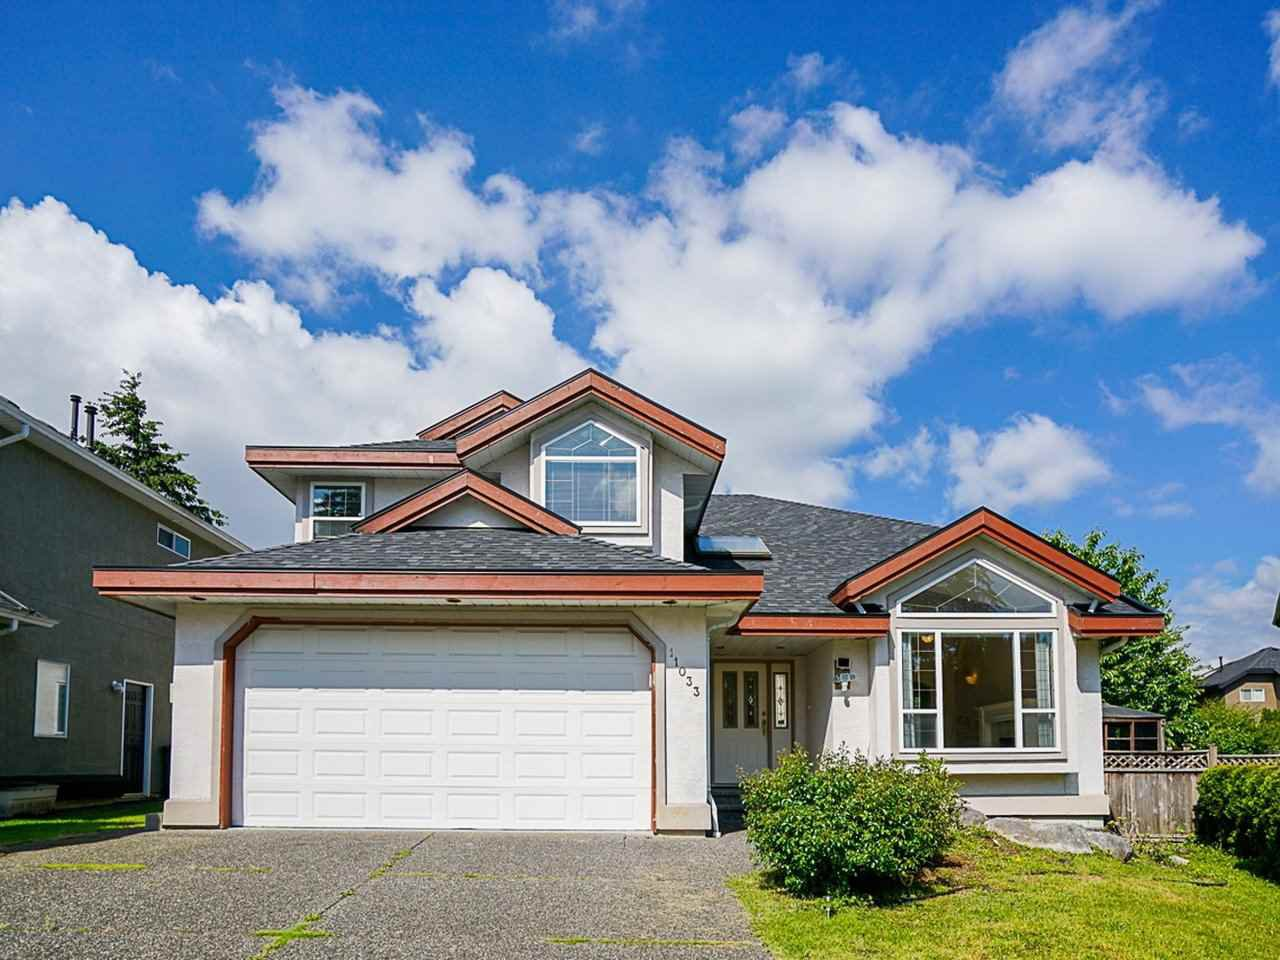 Main Photo: 11033 164 Street in Surrey: Fraser Heights House for sale (North Surrey)  : MLS®# R2460634